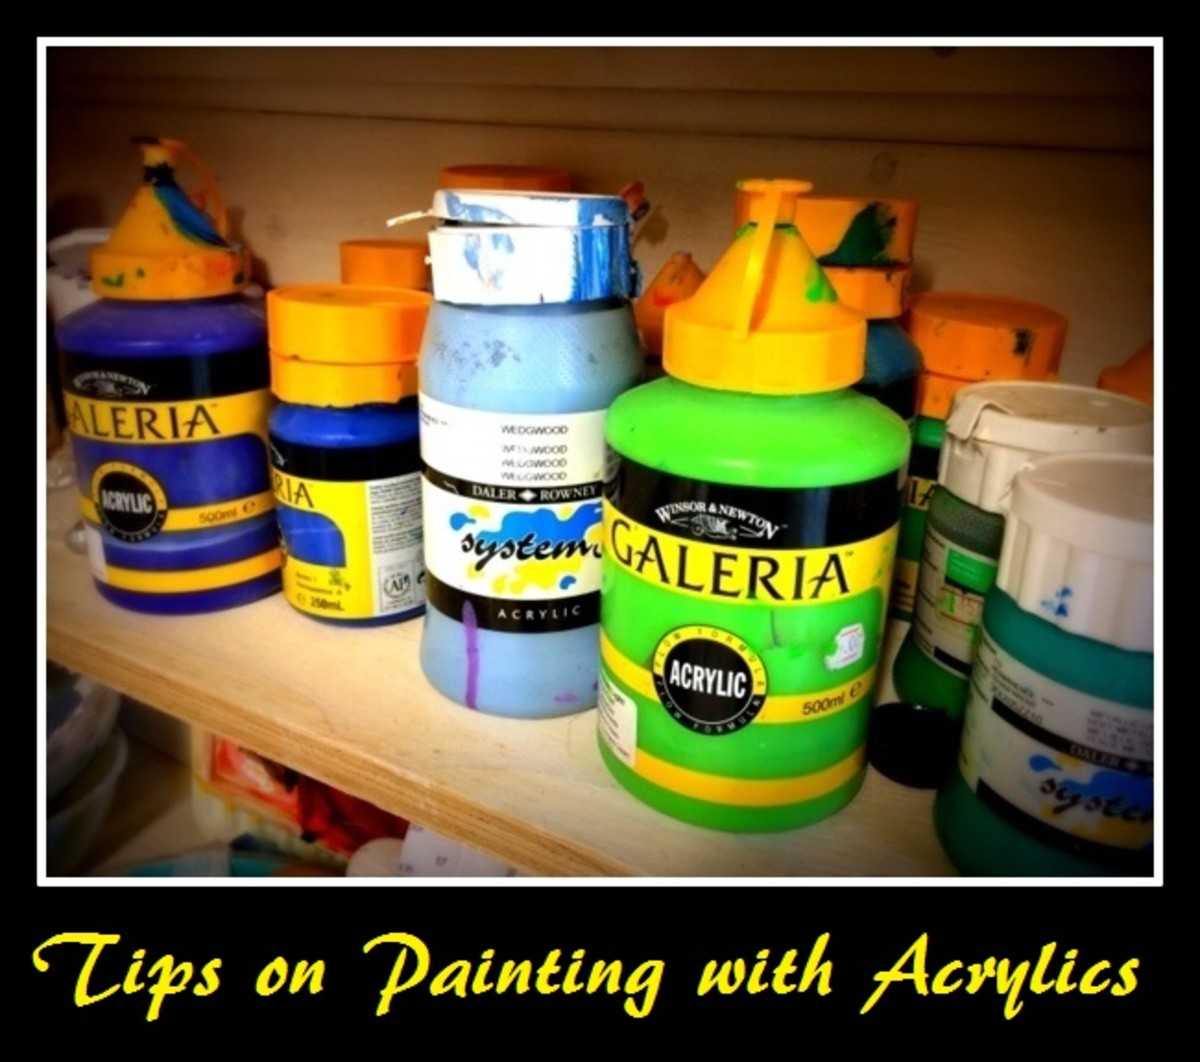 a-beginners-guide-to-painting-with-acrylics